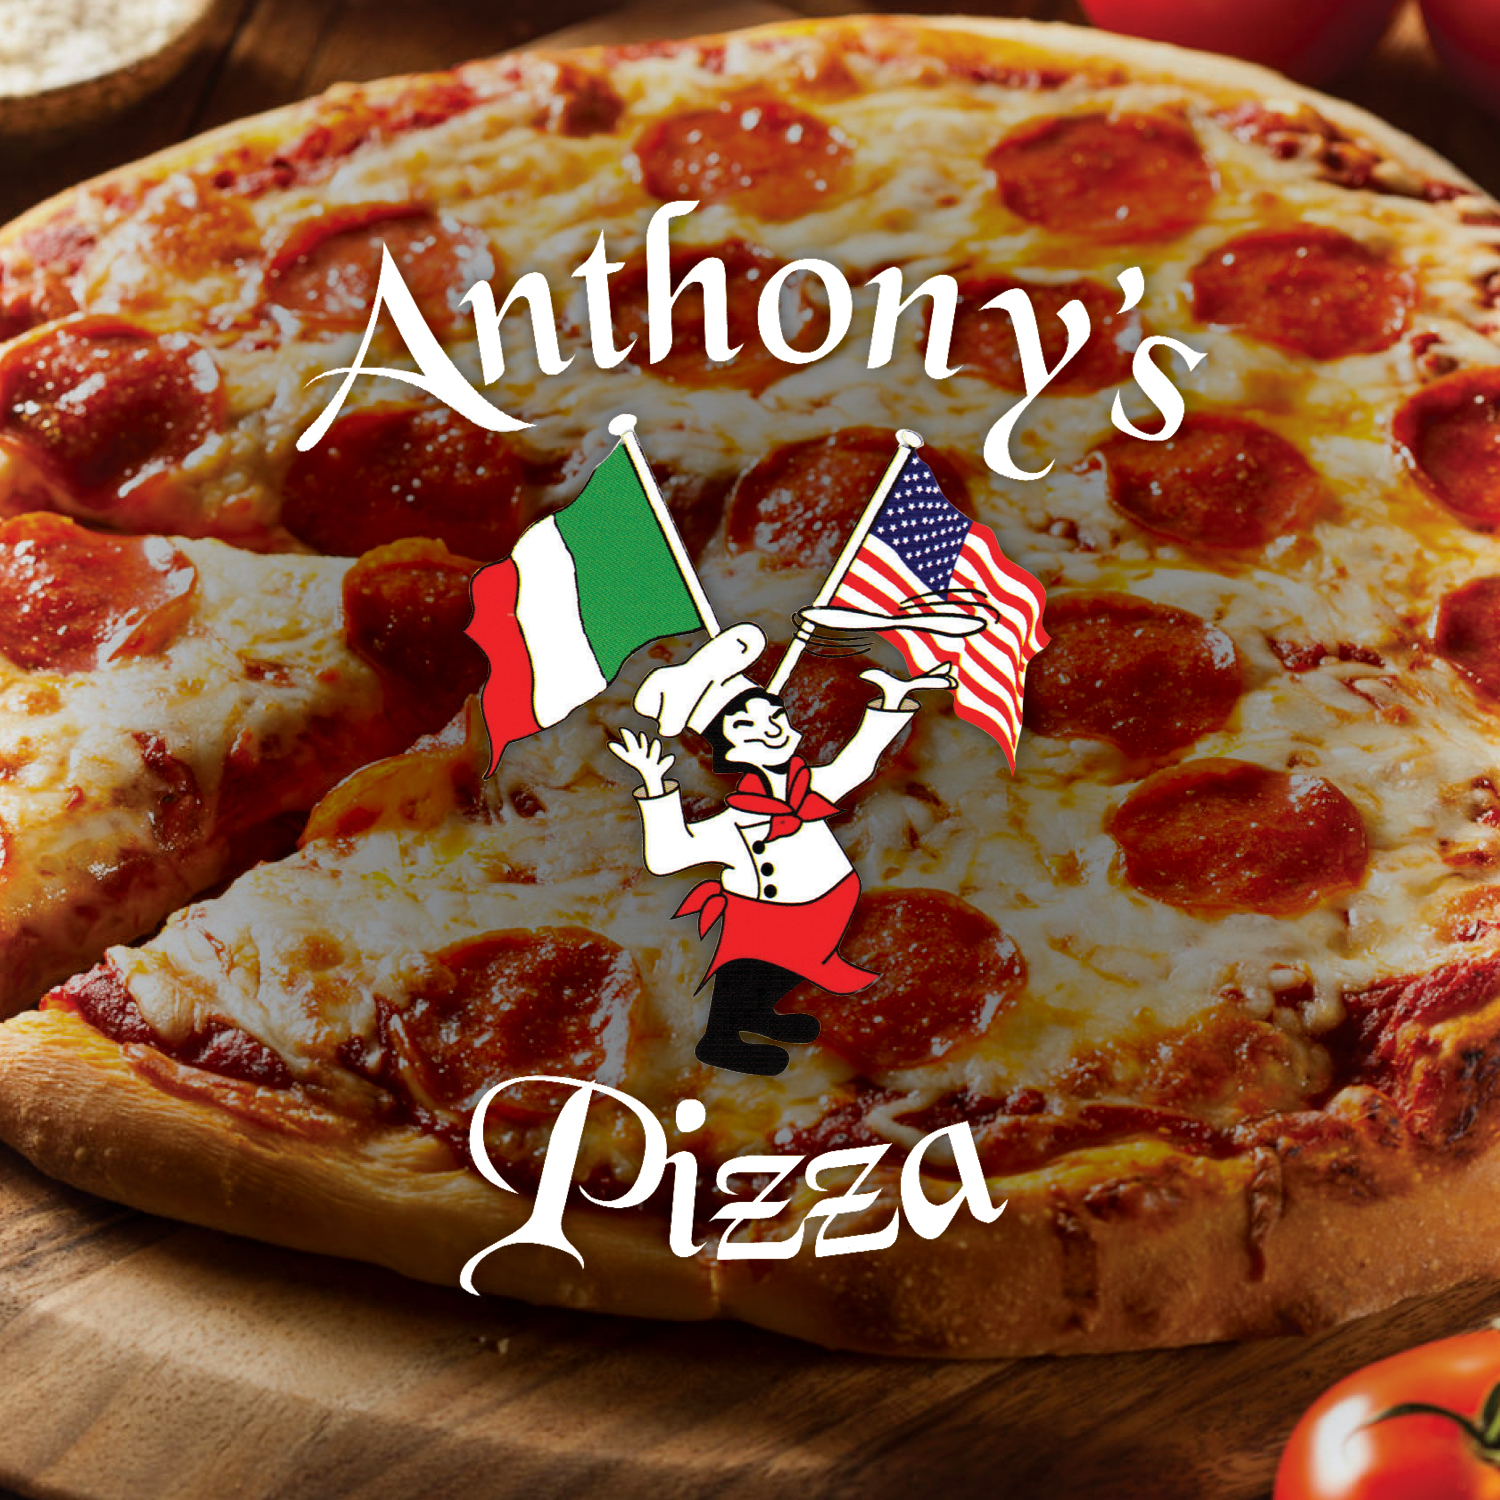 Anthony's Pizza located in Hagerstown will provide you with locally made pizza, subs, pasta and more at the best price in town!     -Click image to view current offers-